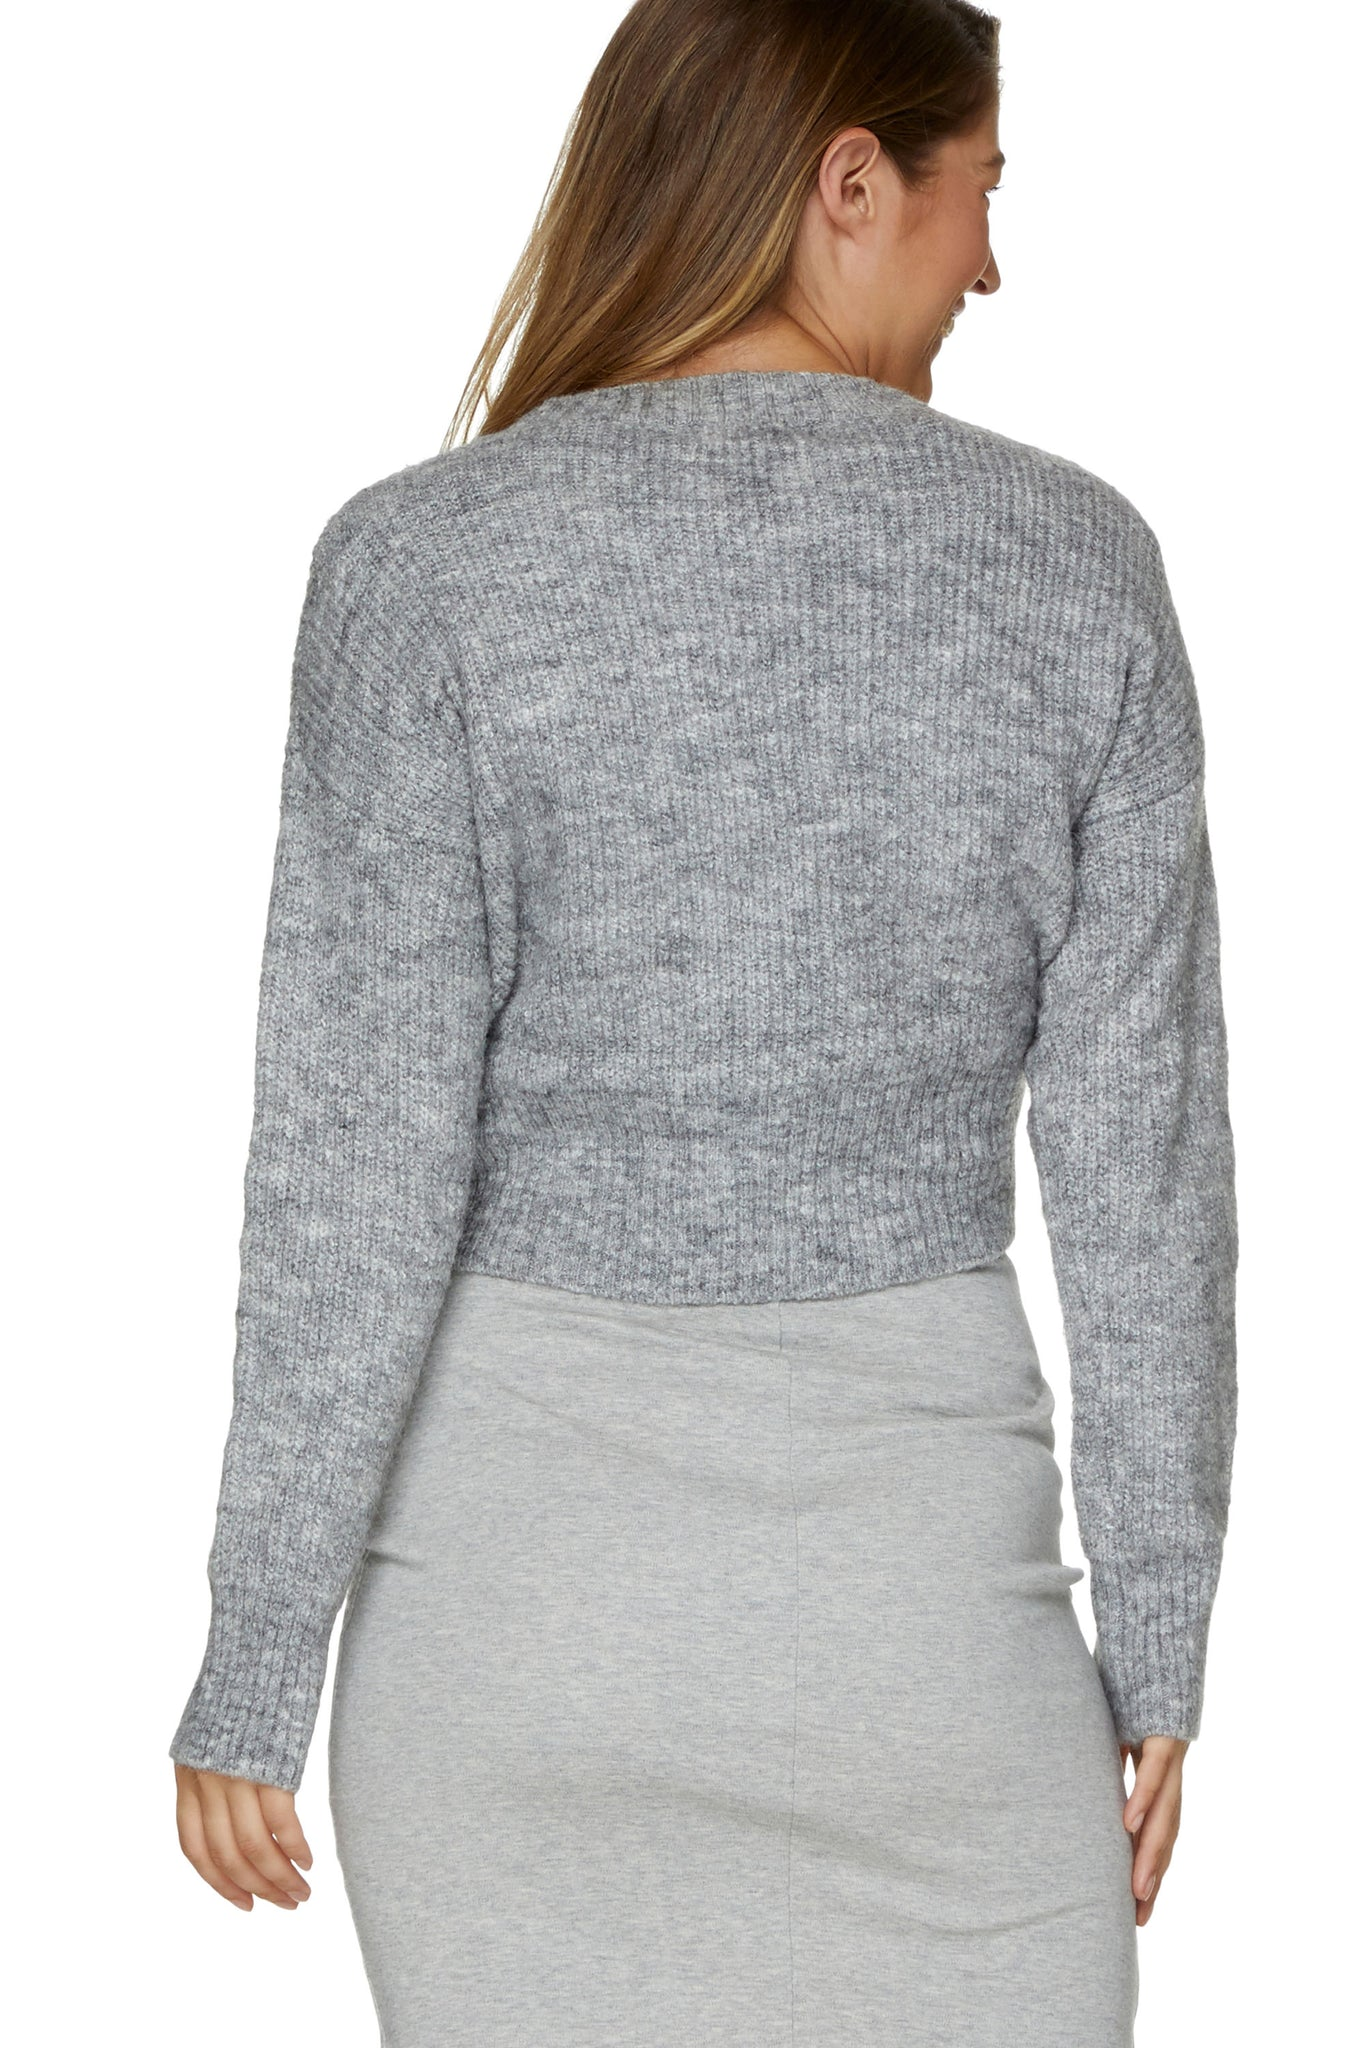 Maternity Grey Jumper 3